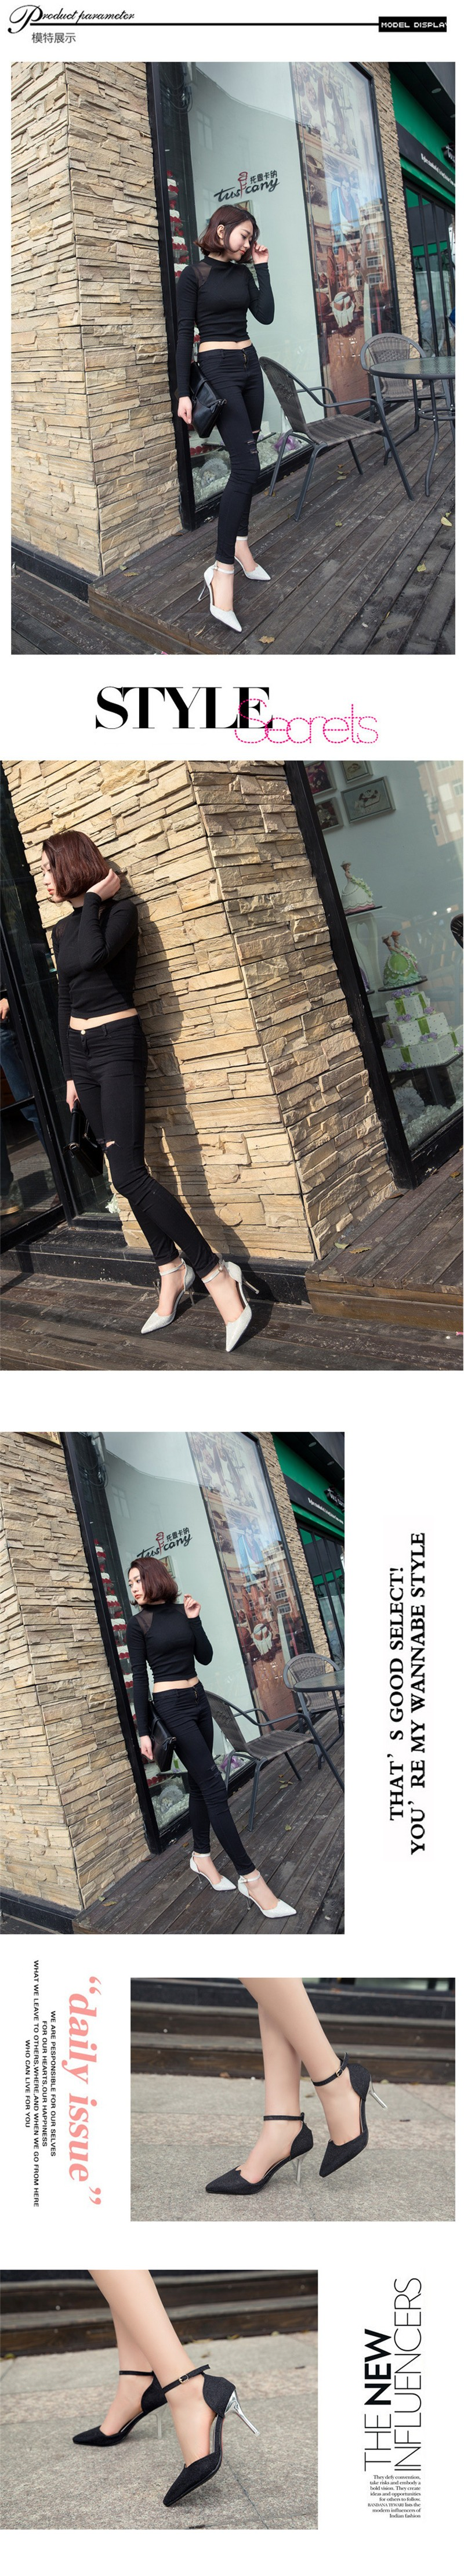 2016 New Hot Sale New European Fashion Sequins 4 Color High Quality Pointed Toe Women Pumps HSB23 (5)